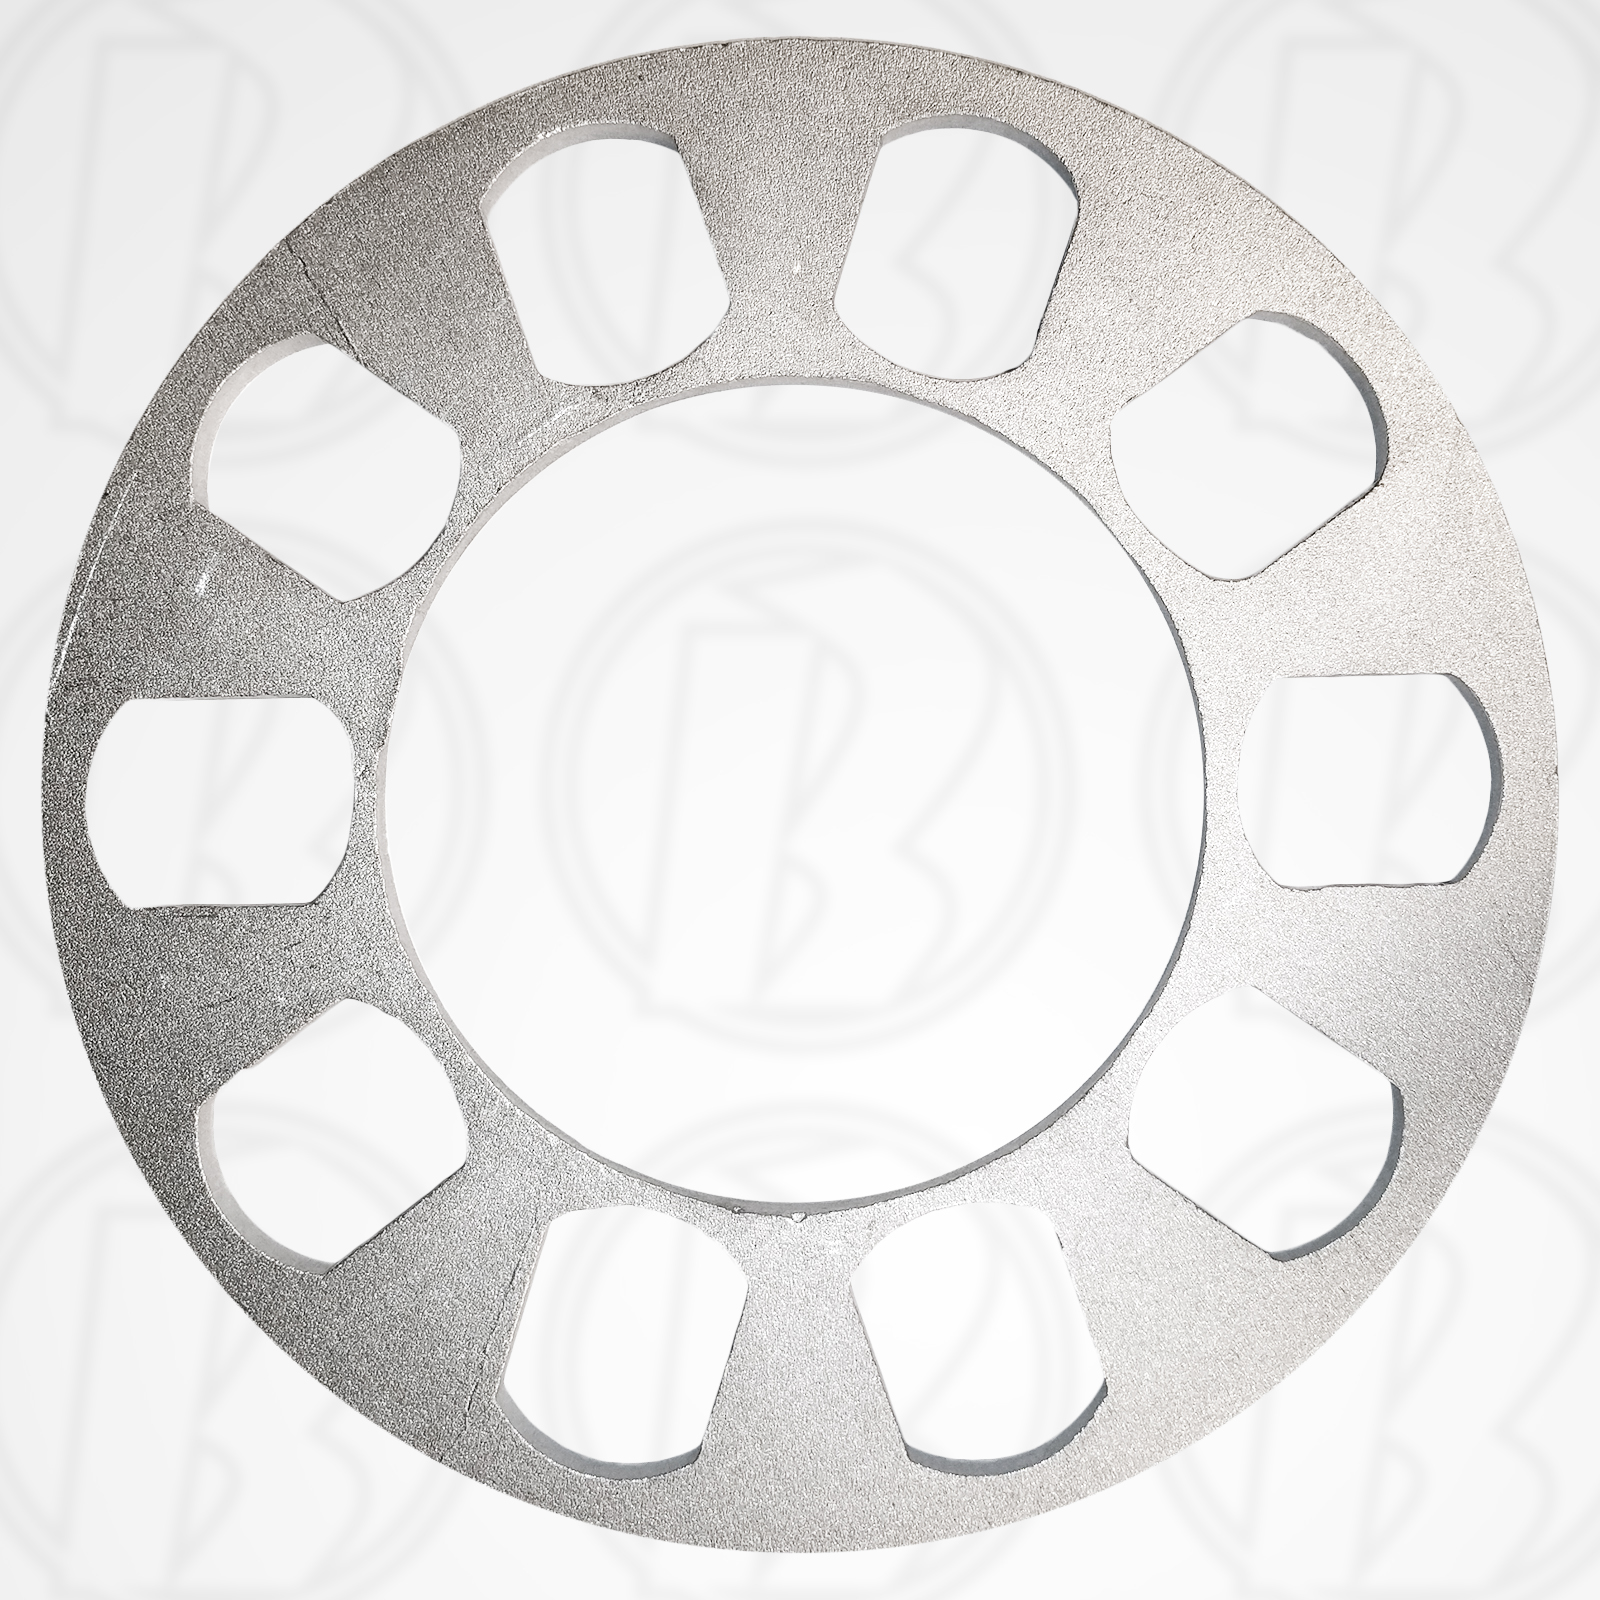 Wheel Spacers Tire Shop Supplies Shop tools wheel adapters and more